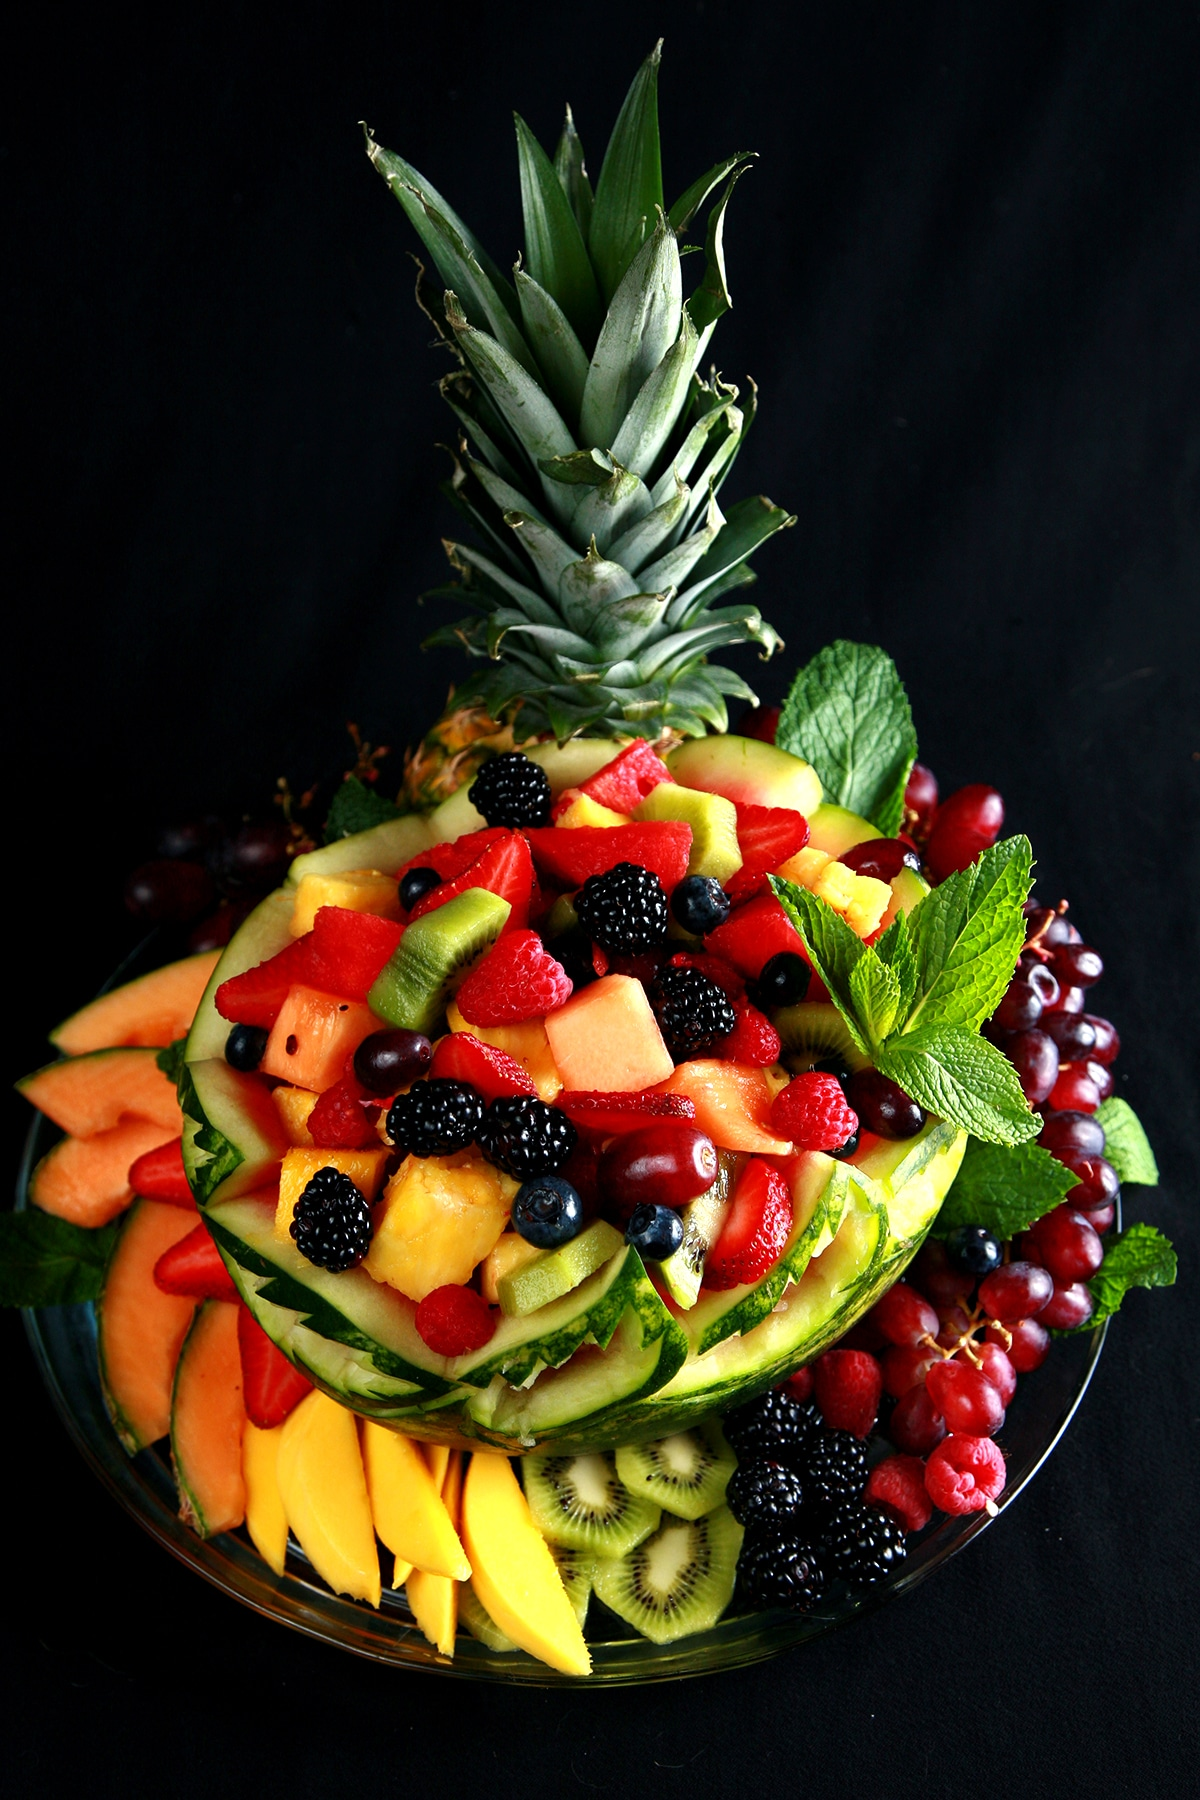 A large, brightly coloured watermelon bowl display. The watermelon is carved with a Caladium Leaf design, and is filled and surrounded by a rainbow assortment of fruit.